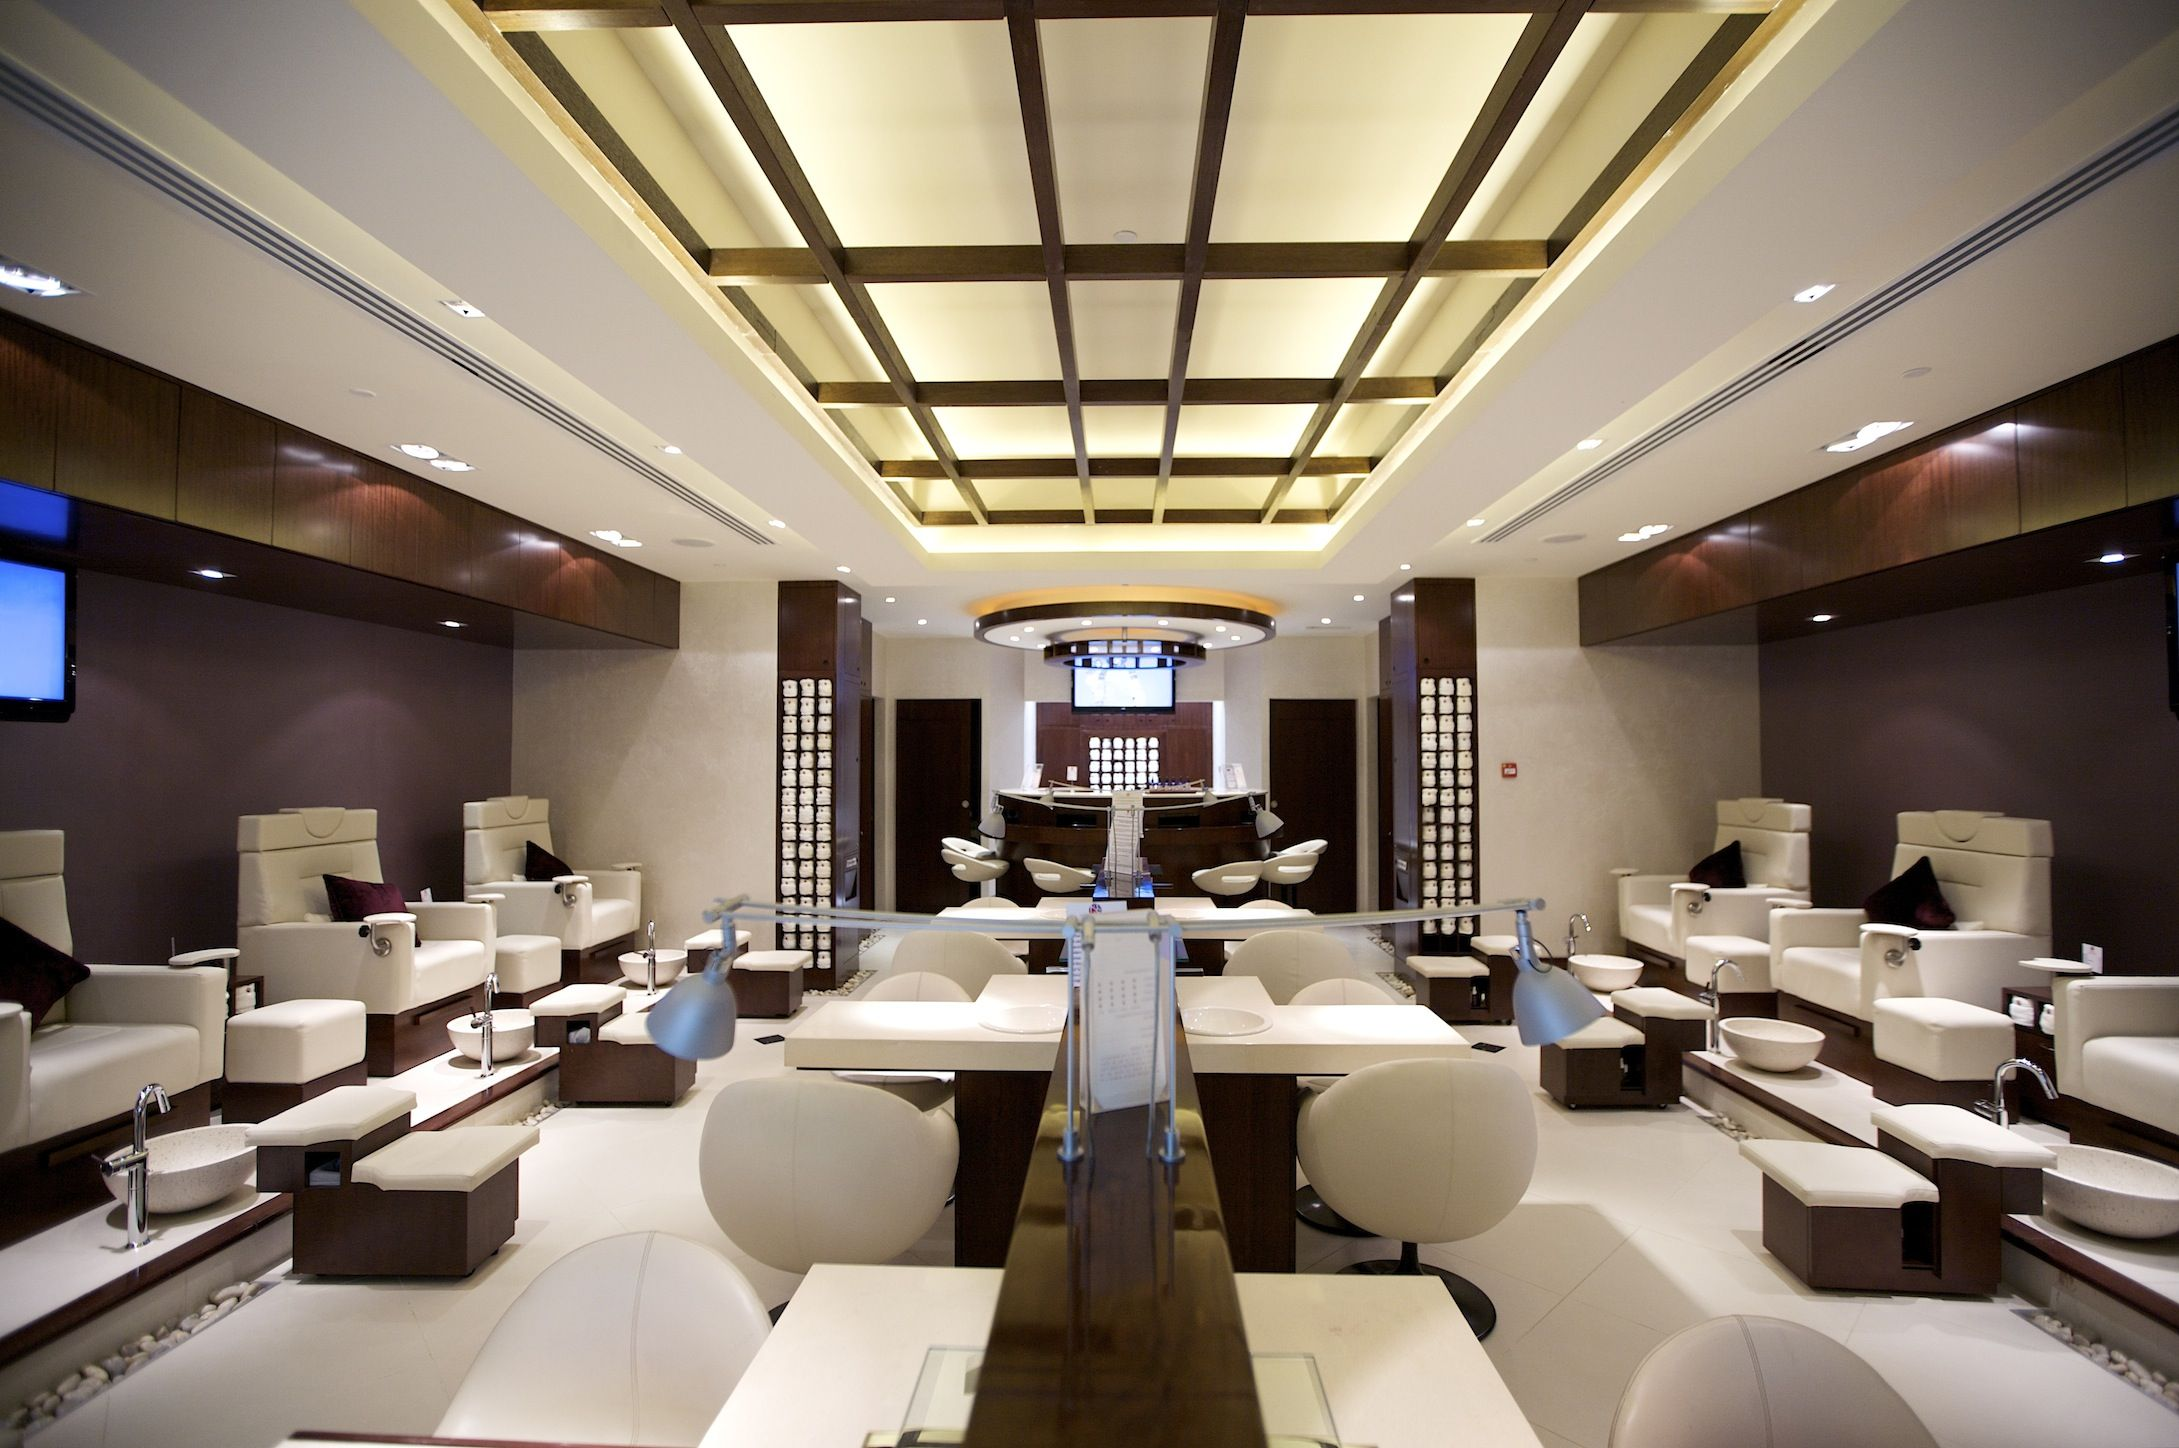 Luxury nail salon interior design - Nail Salon Designs Nail Bar Interior Design Commercial Salon Pierre Jean Baptiste Biz Pinterest Nail Salons Salons And Nail Bar